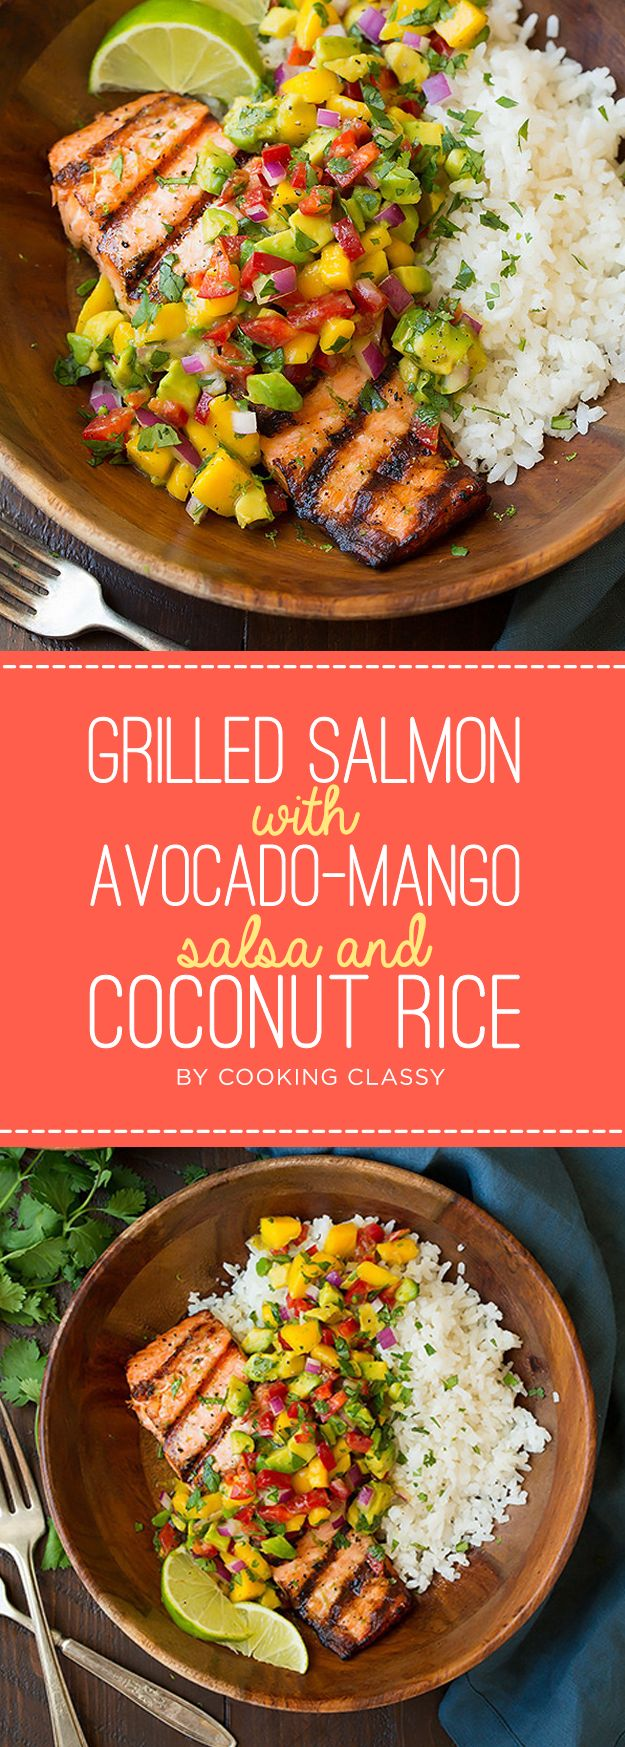 Grilled Salmon with Avocado-Mango Salsa and Coconut Rice